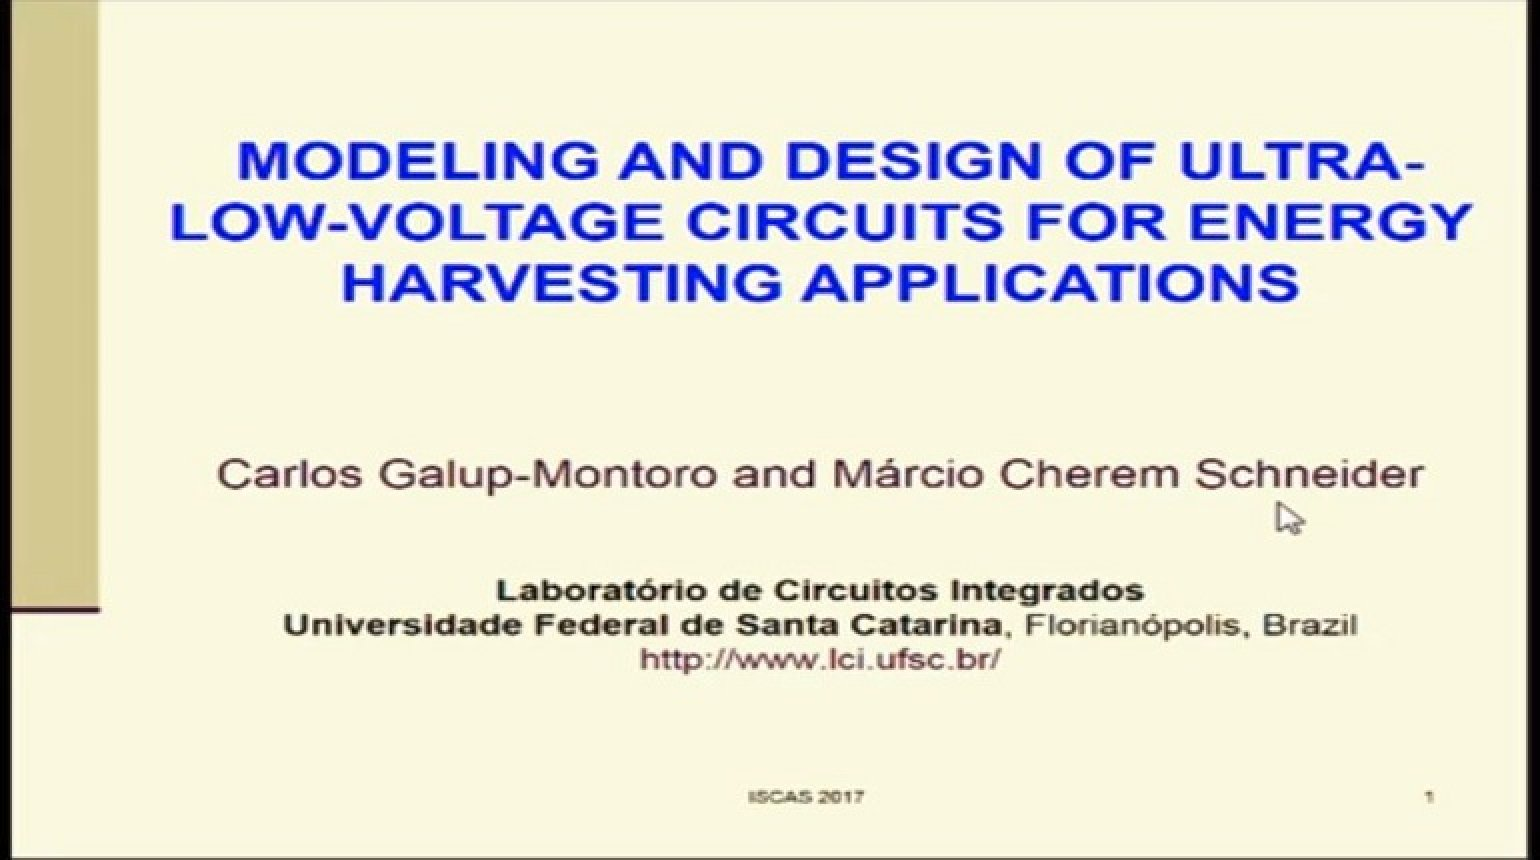 Modeling and Design of Ultra-Low-Voltage Circuits for Energy Harvesting Applications